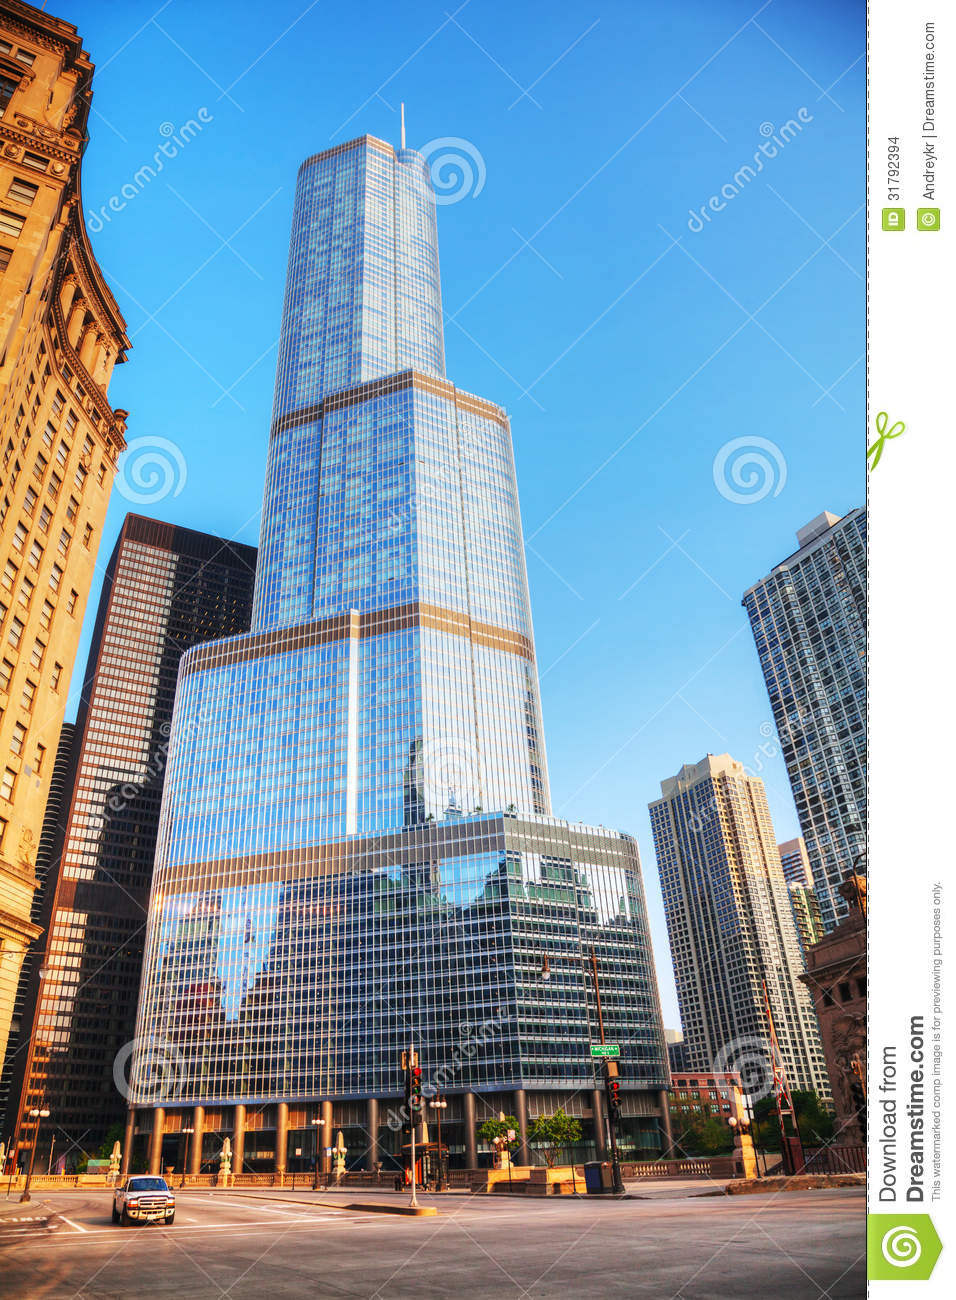 Trump International Hotel And Tower In Chicago, IL In Morning.